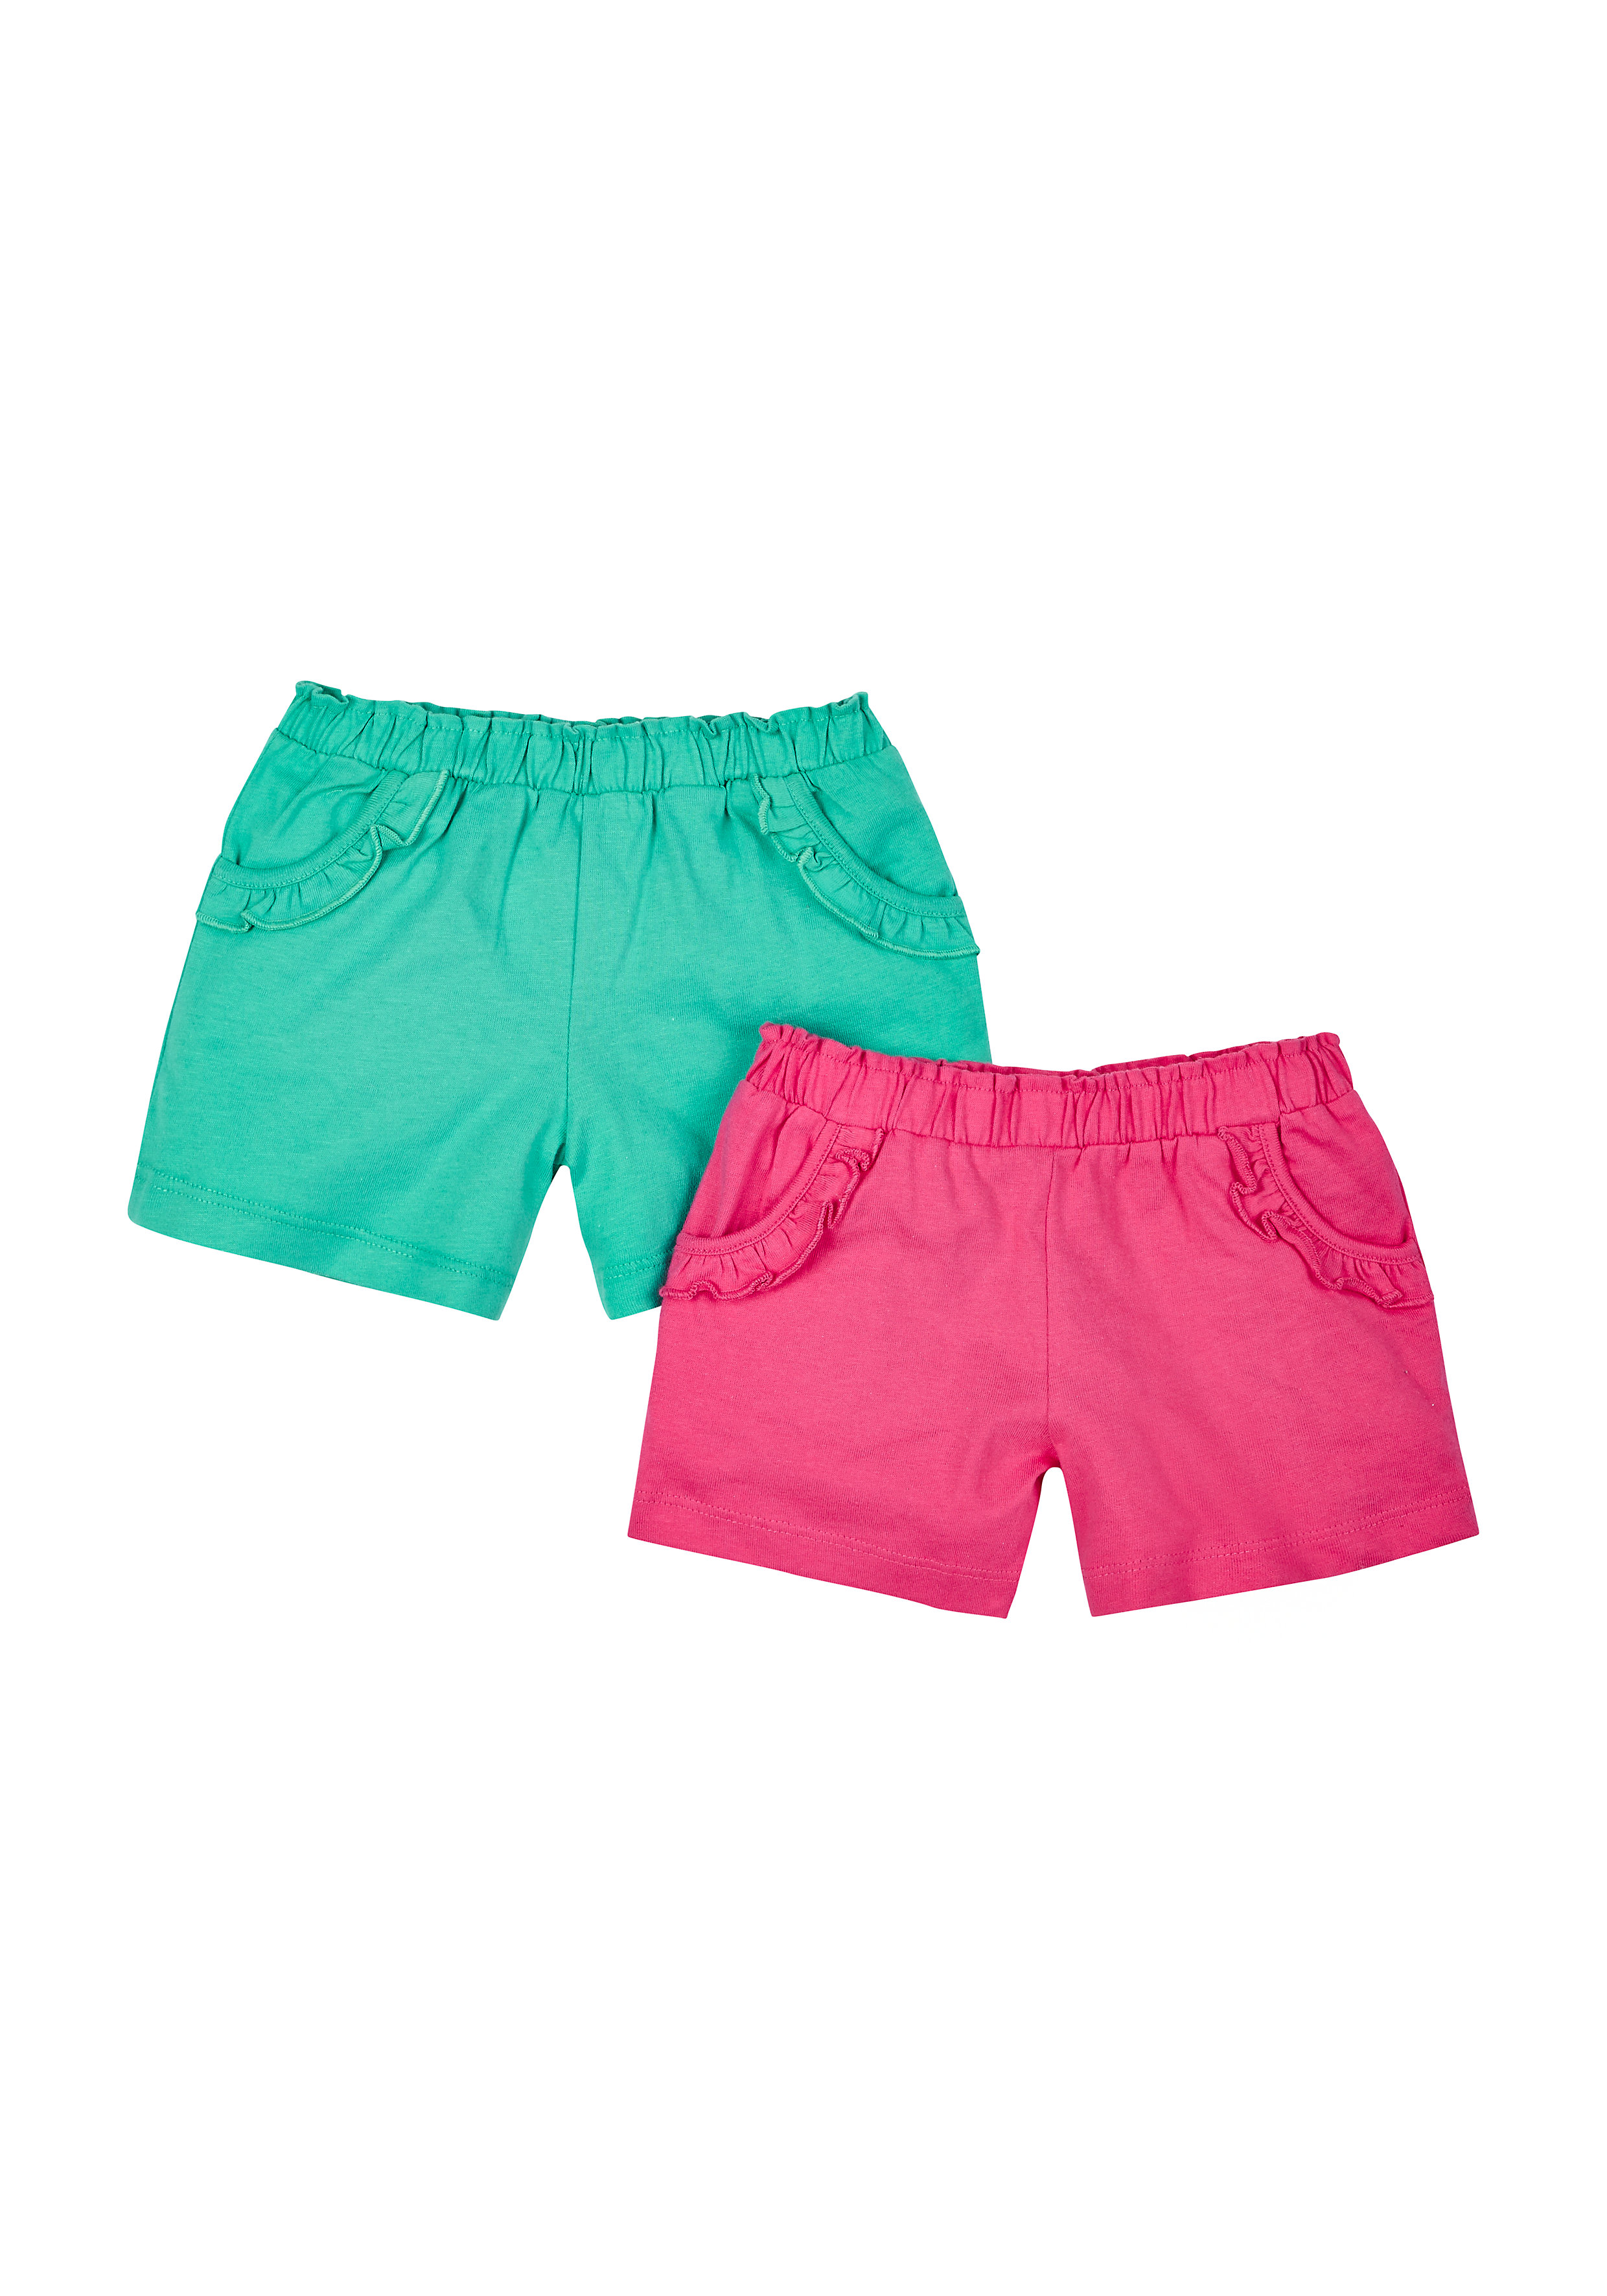 Mothercare | Girls Teal And Pink Shorts - Pack Of 2